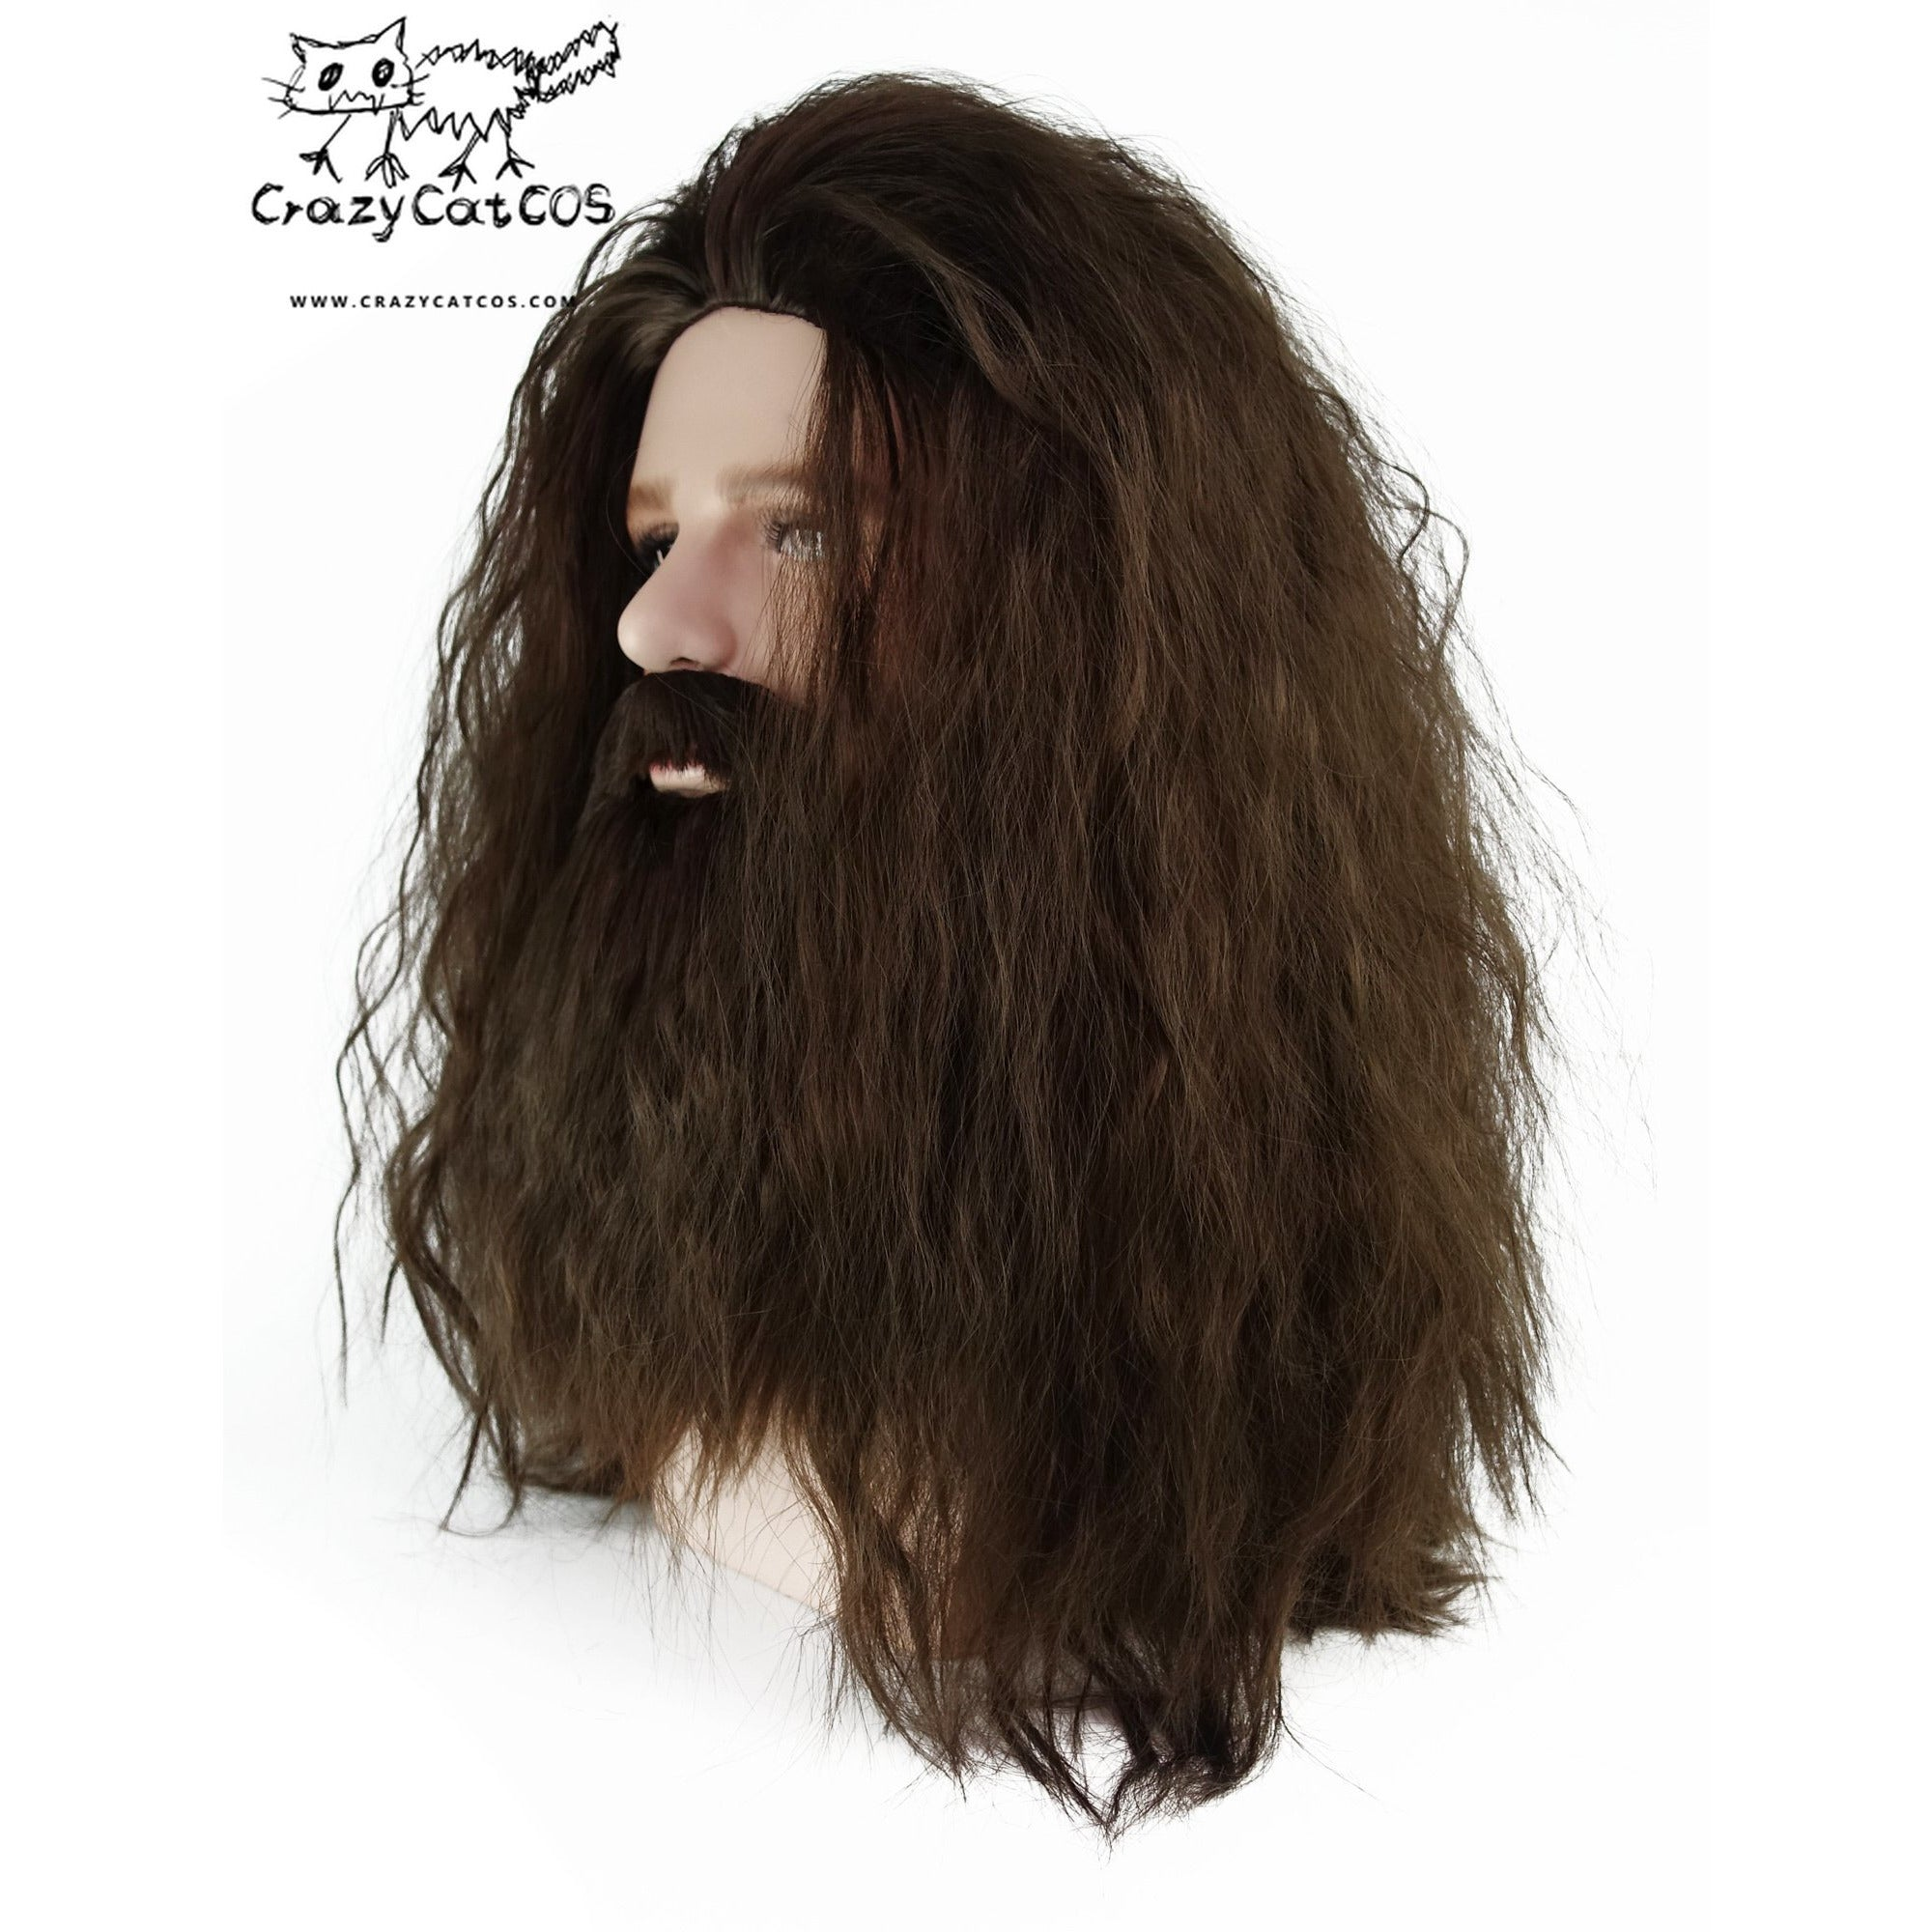 CrazyCatCos Rubeus Hagrid Cosplay Wig Long Curly Brown Hair and Beard Halloween Costume Wig